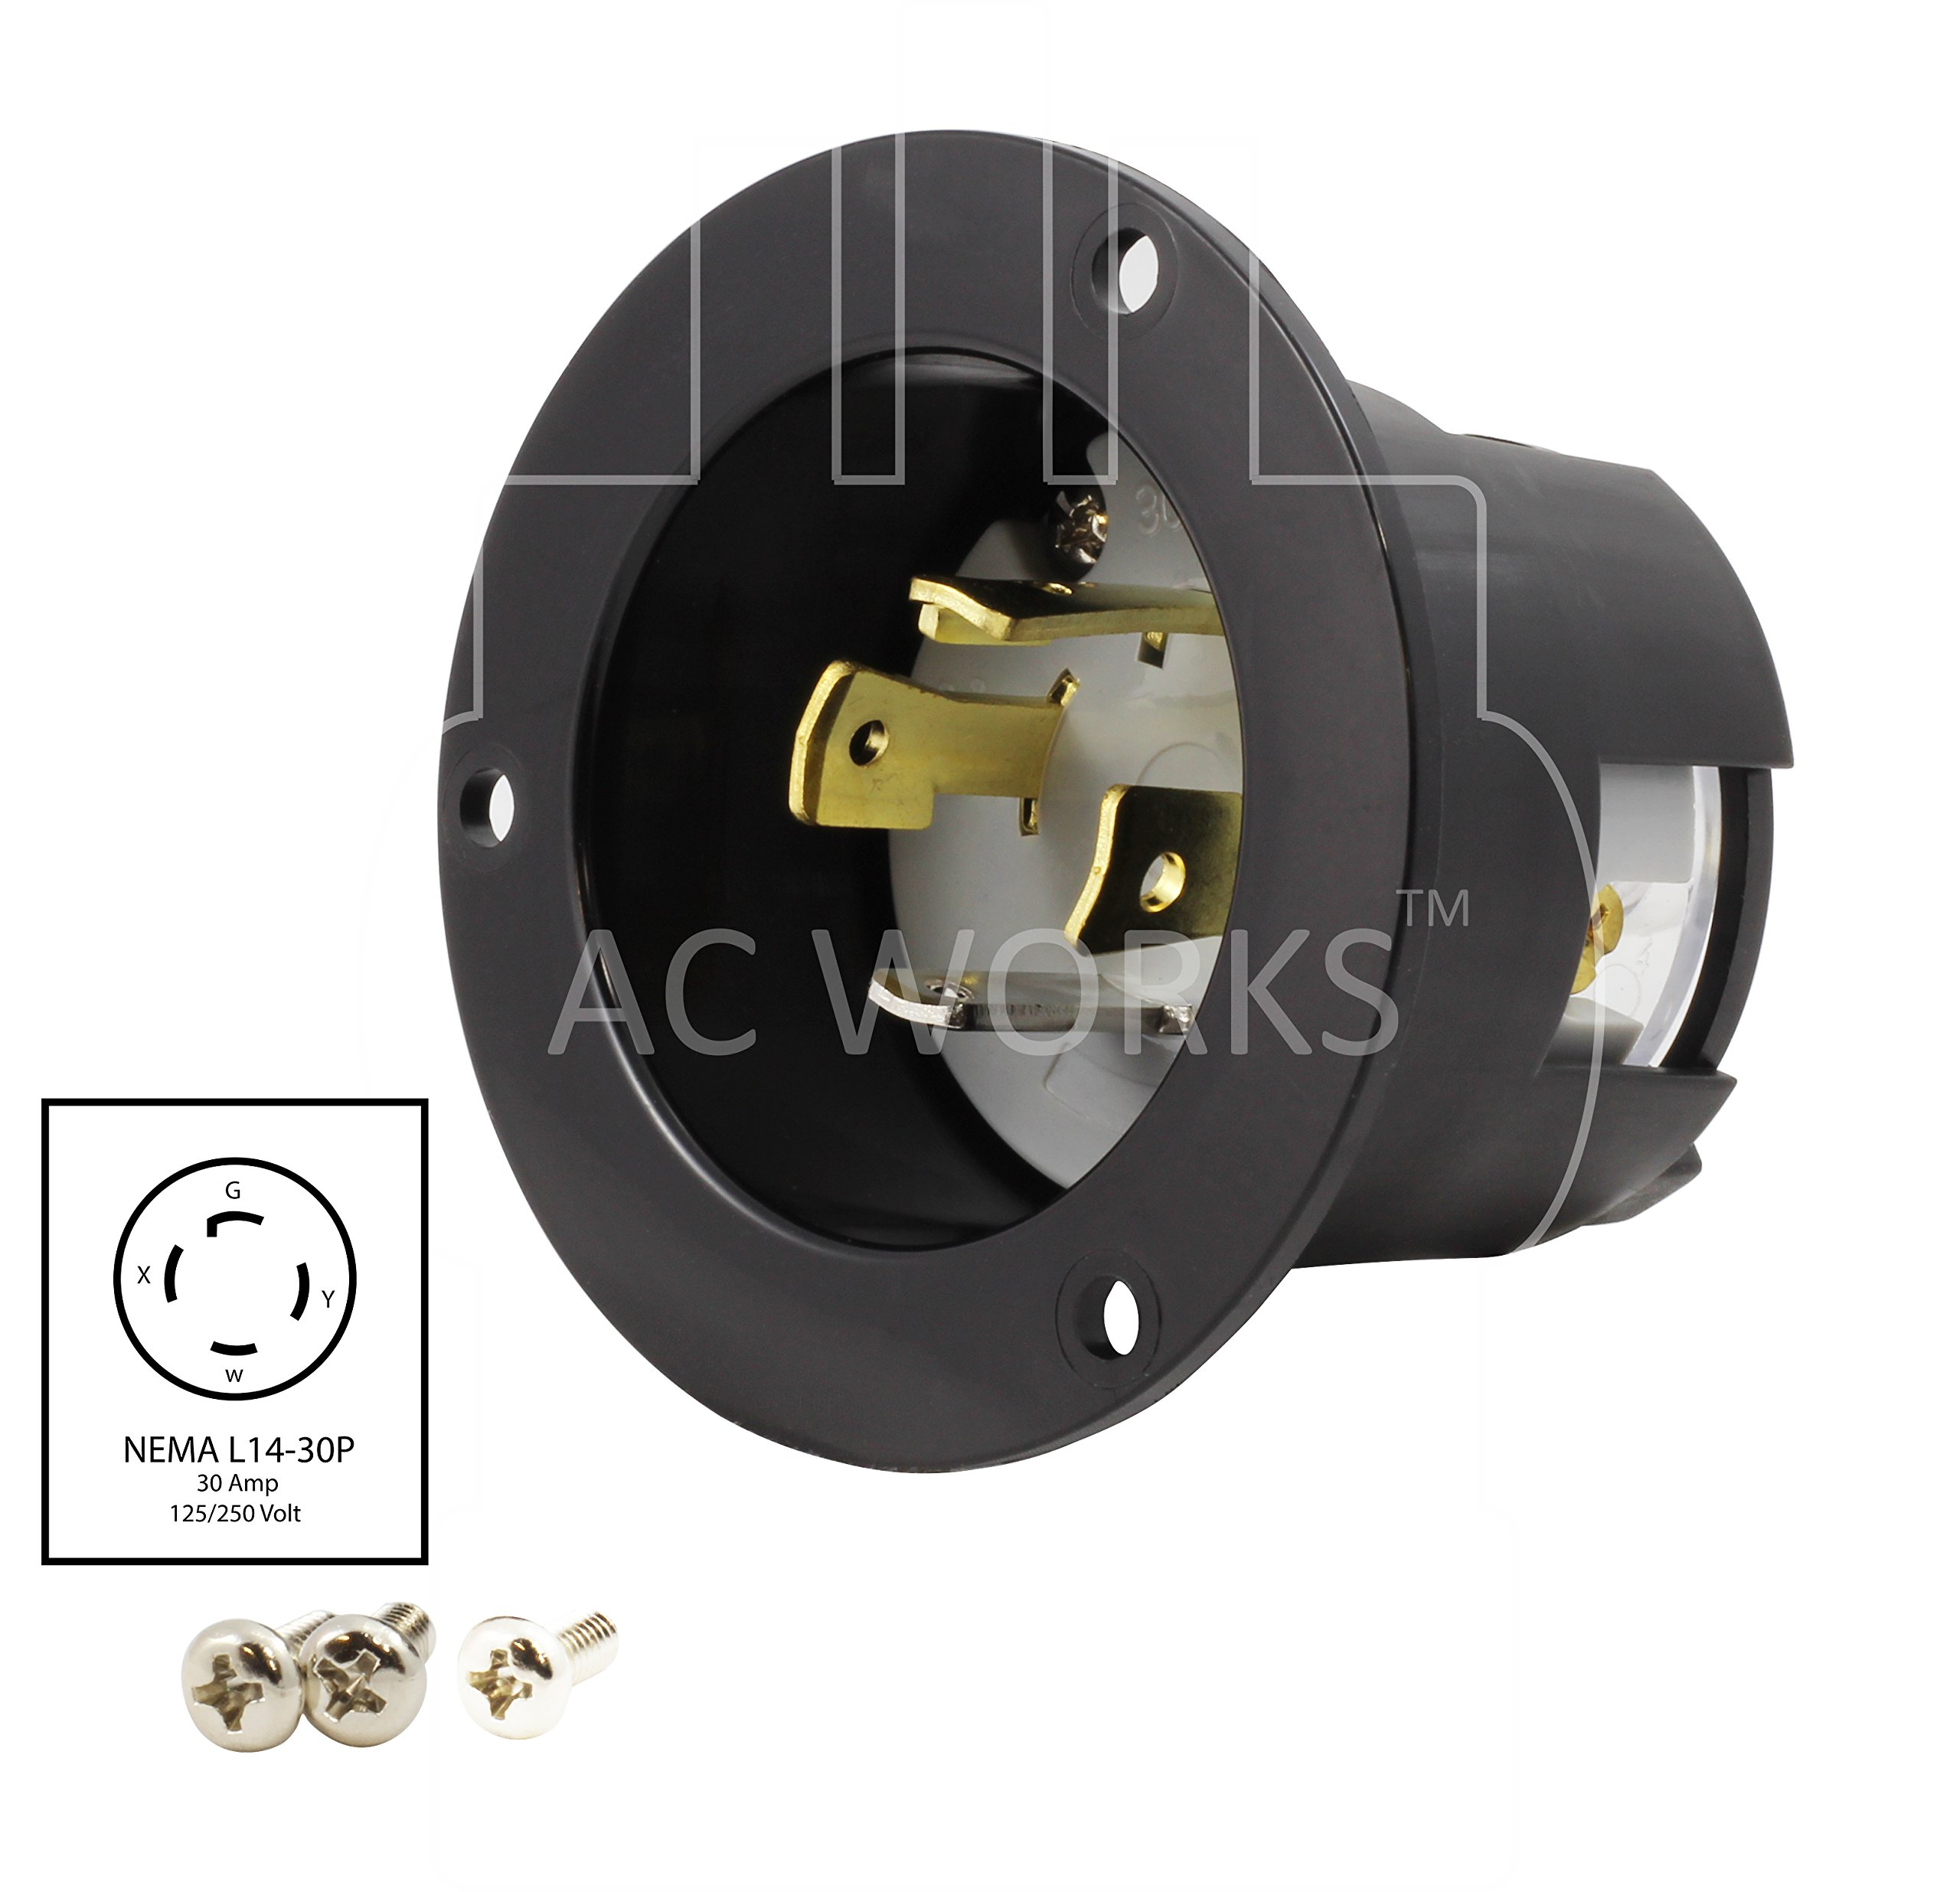 AC WORKS ASINL1430P 30-Amp 125/250-Volt NEMA L14-30P Flanged Power Input Inlet by AC WORKS (Image #2)